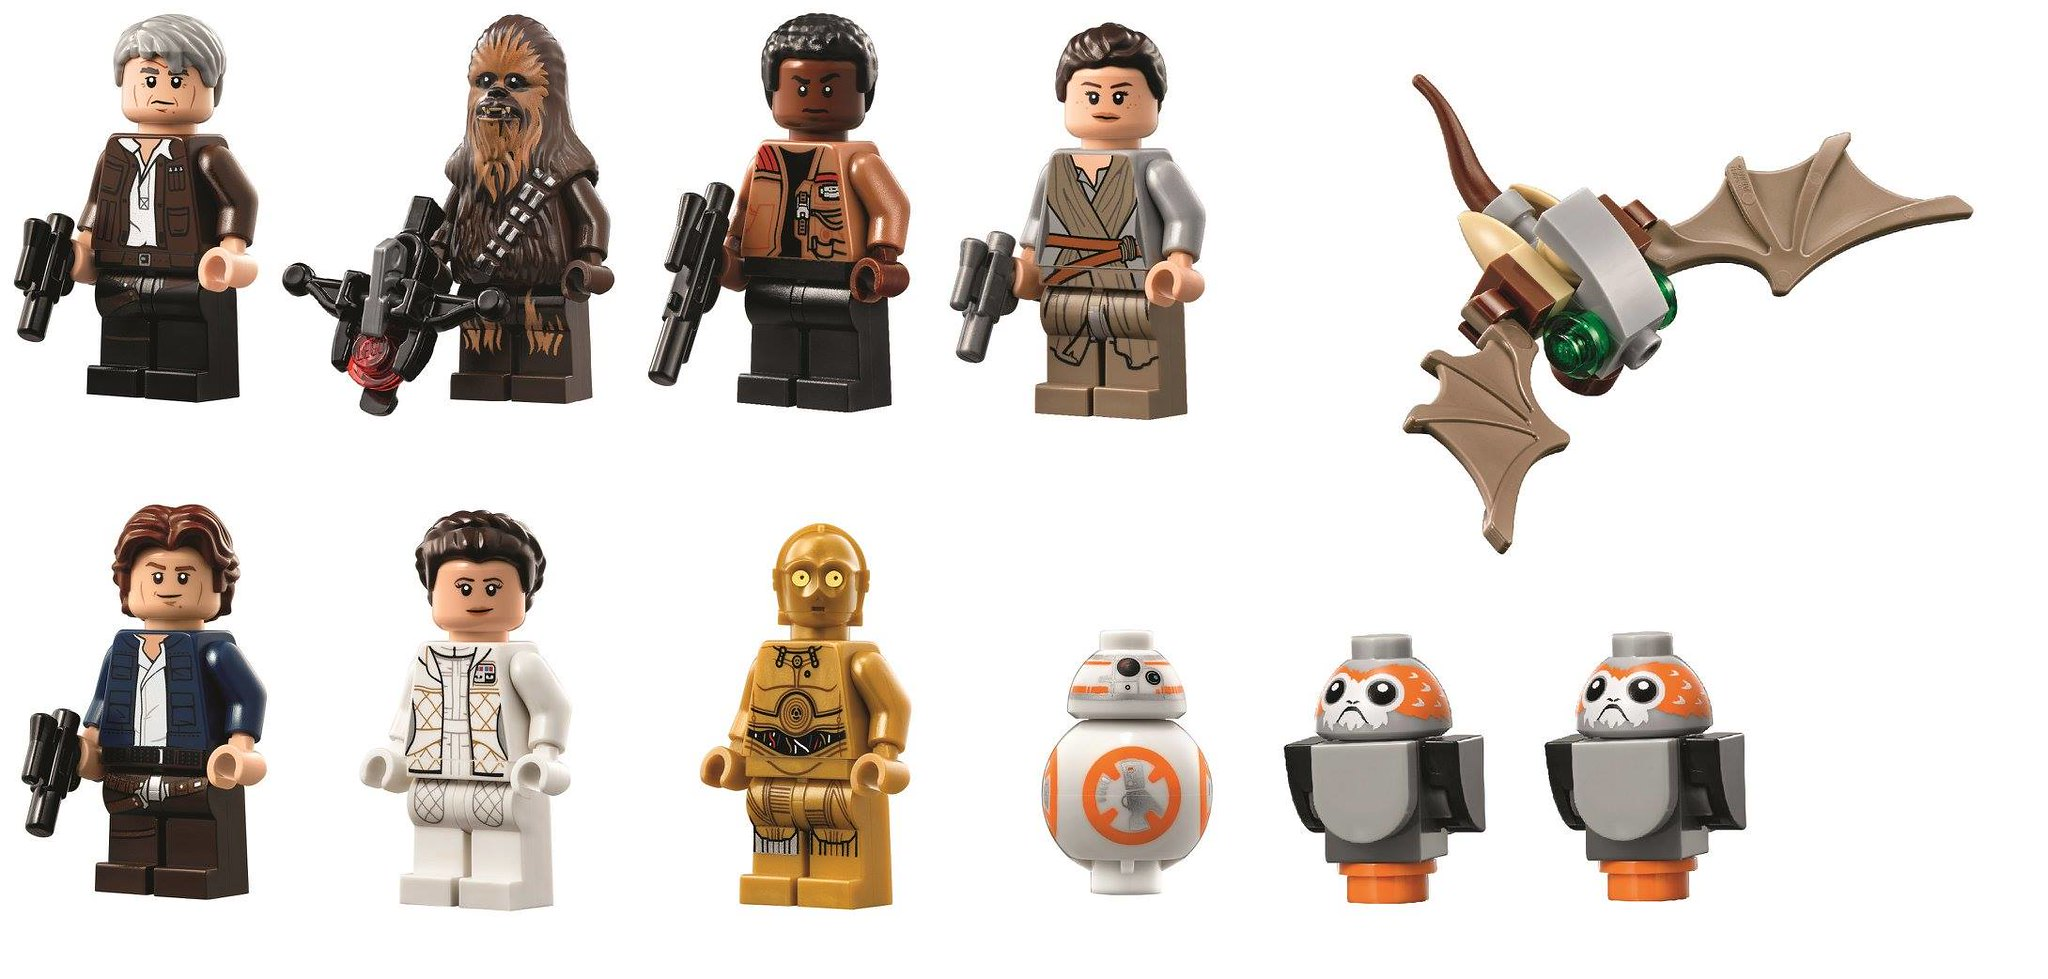 Minifigs and figures